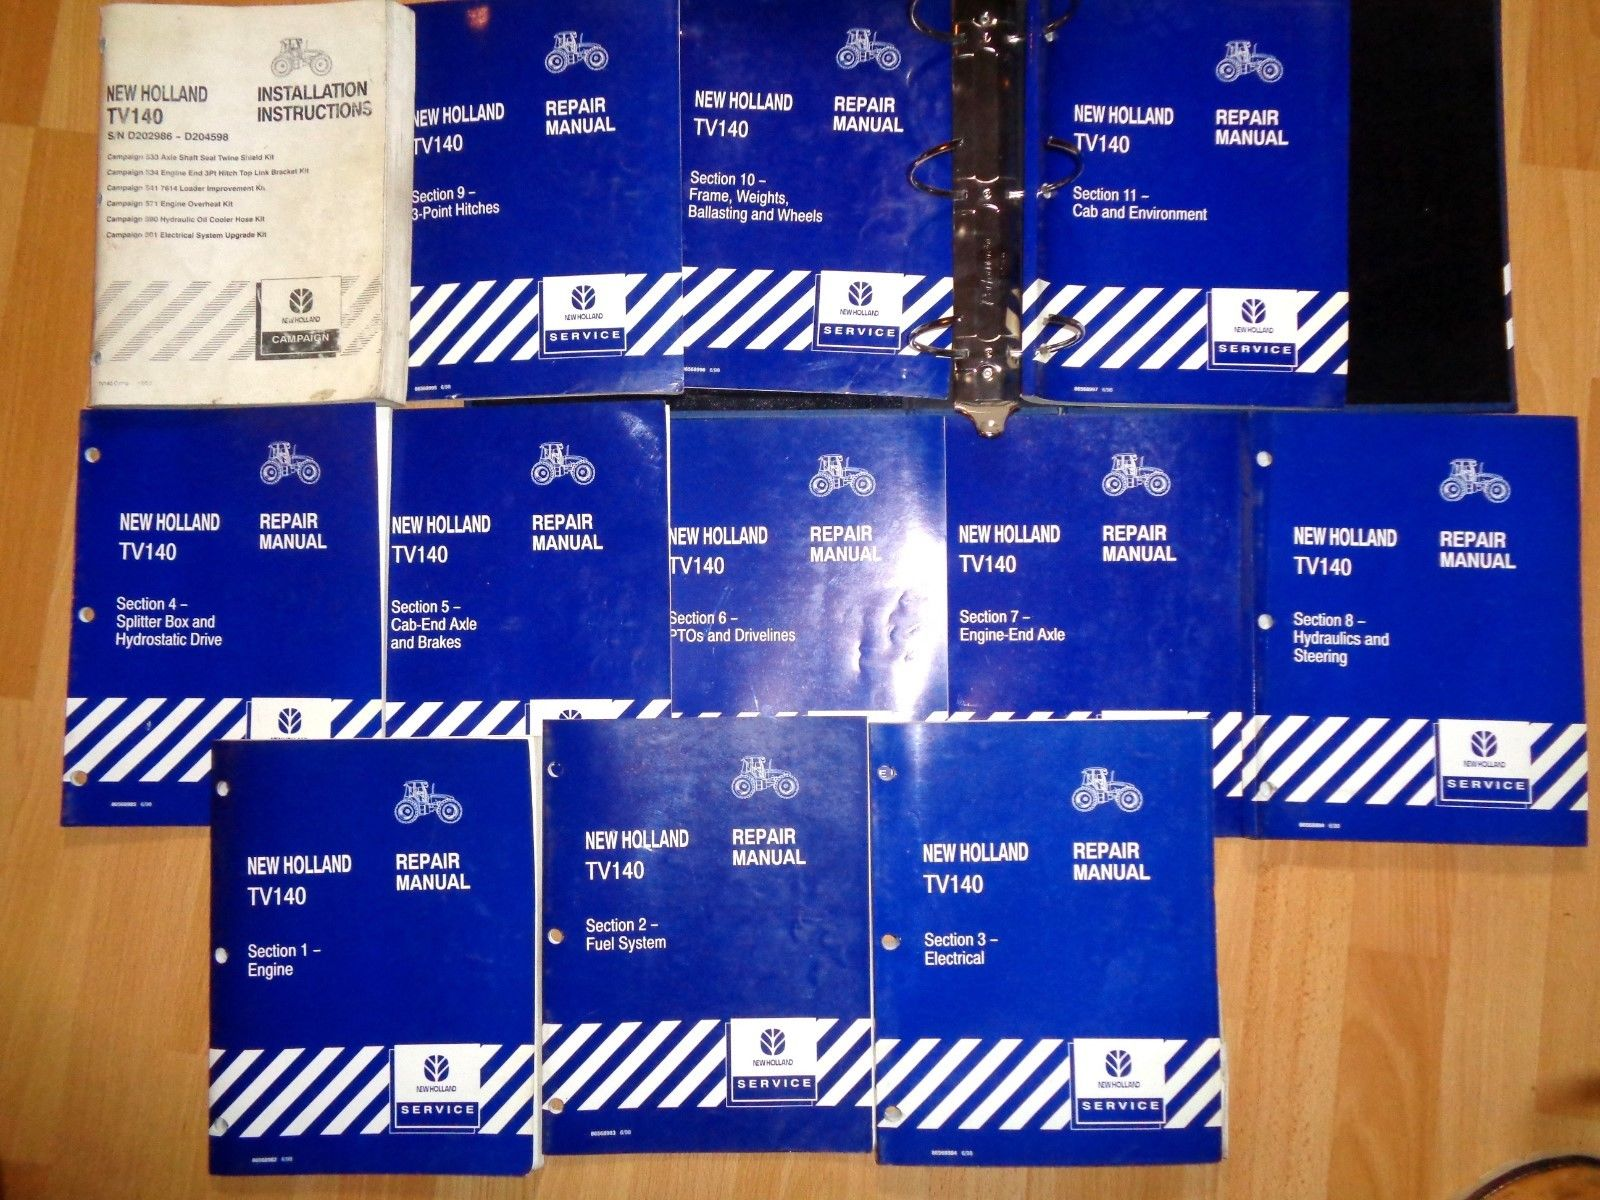 New Holland Manuales de Taller-Service Manuals - manuel reparations